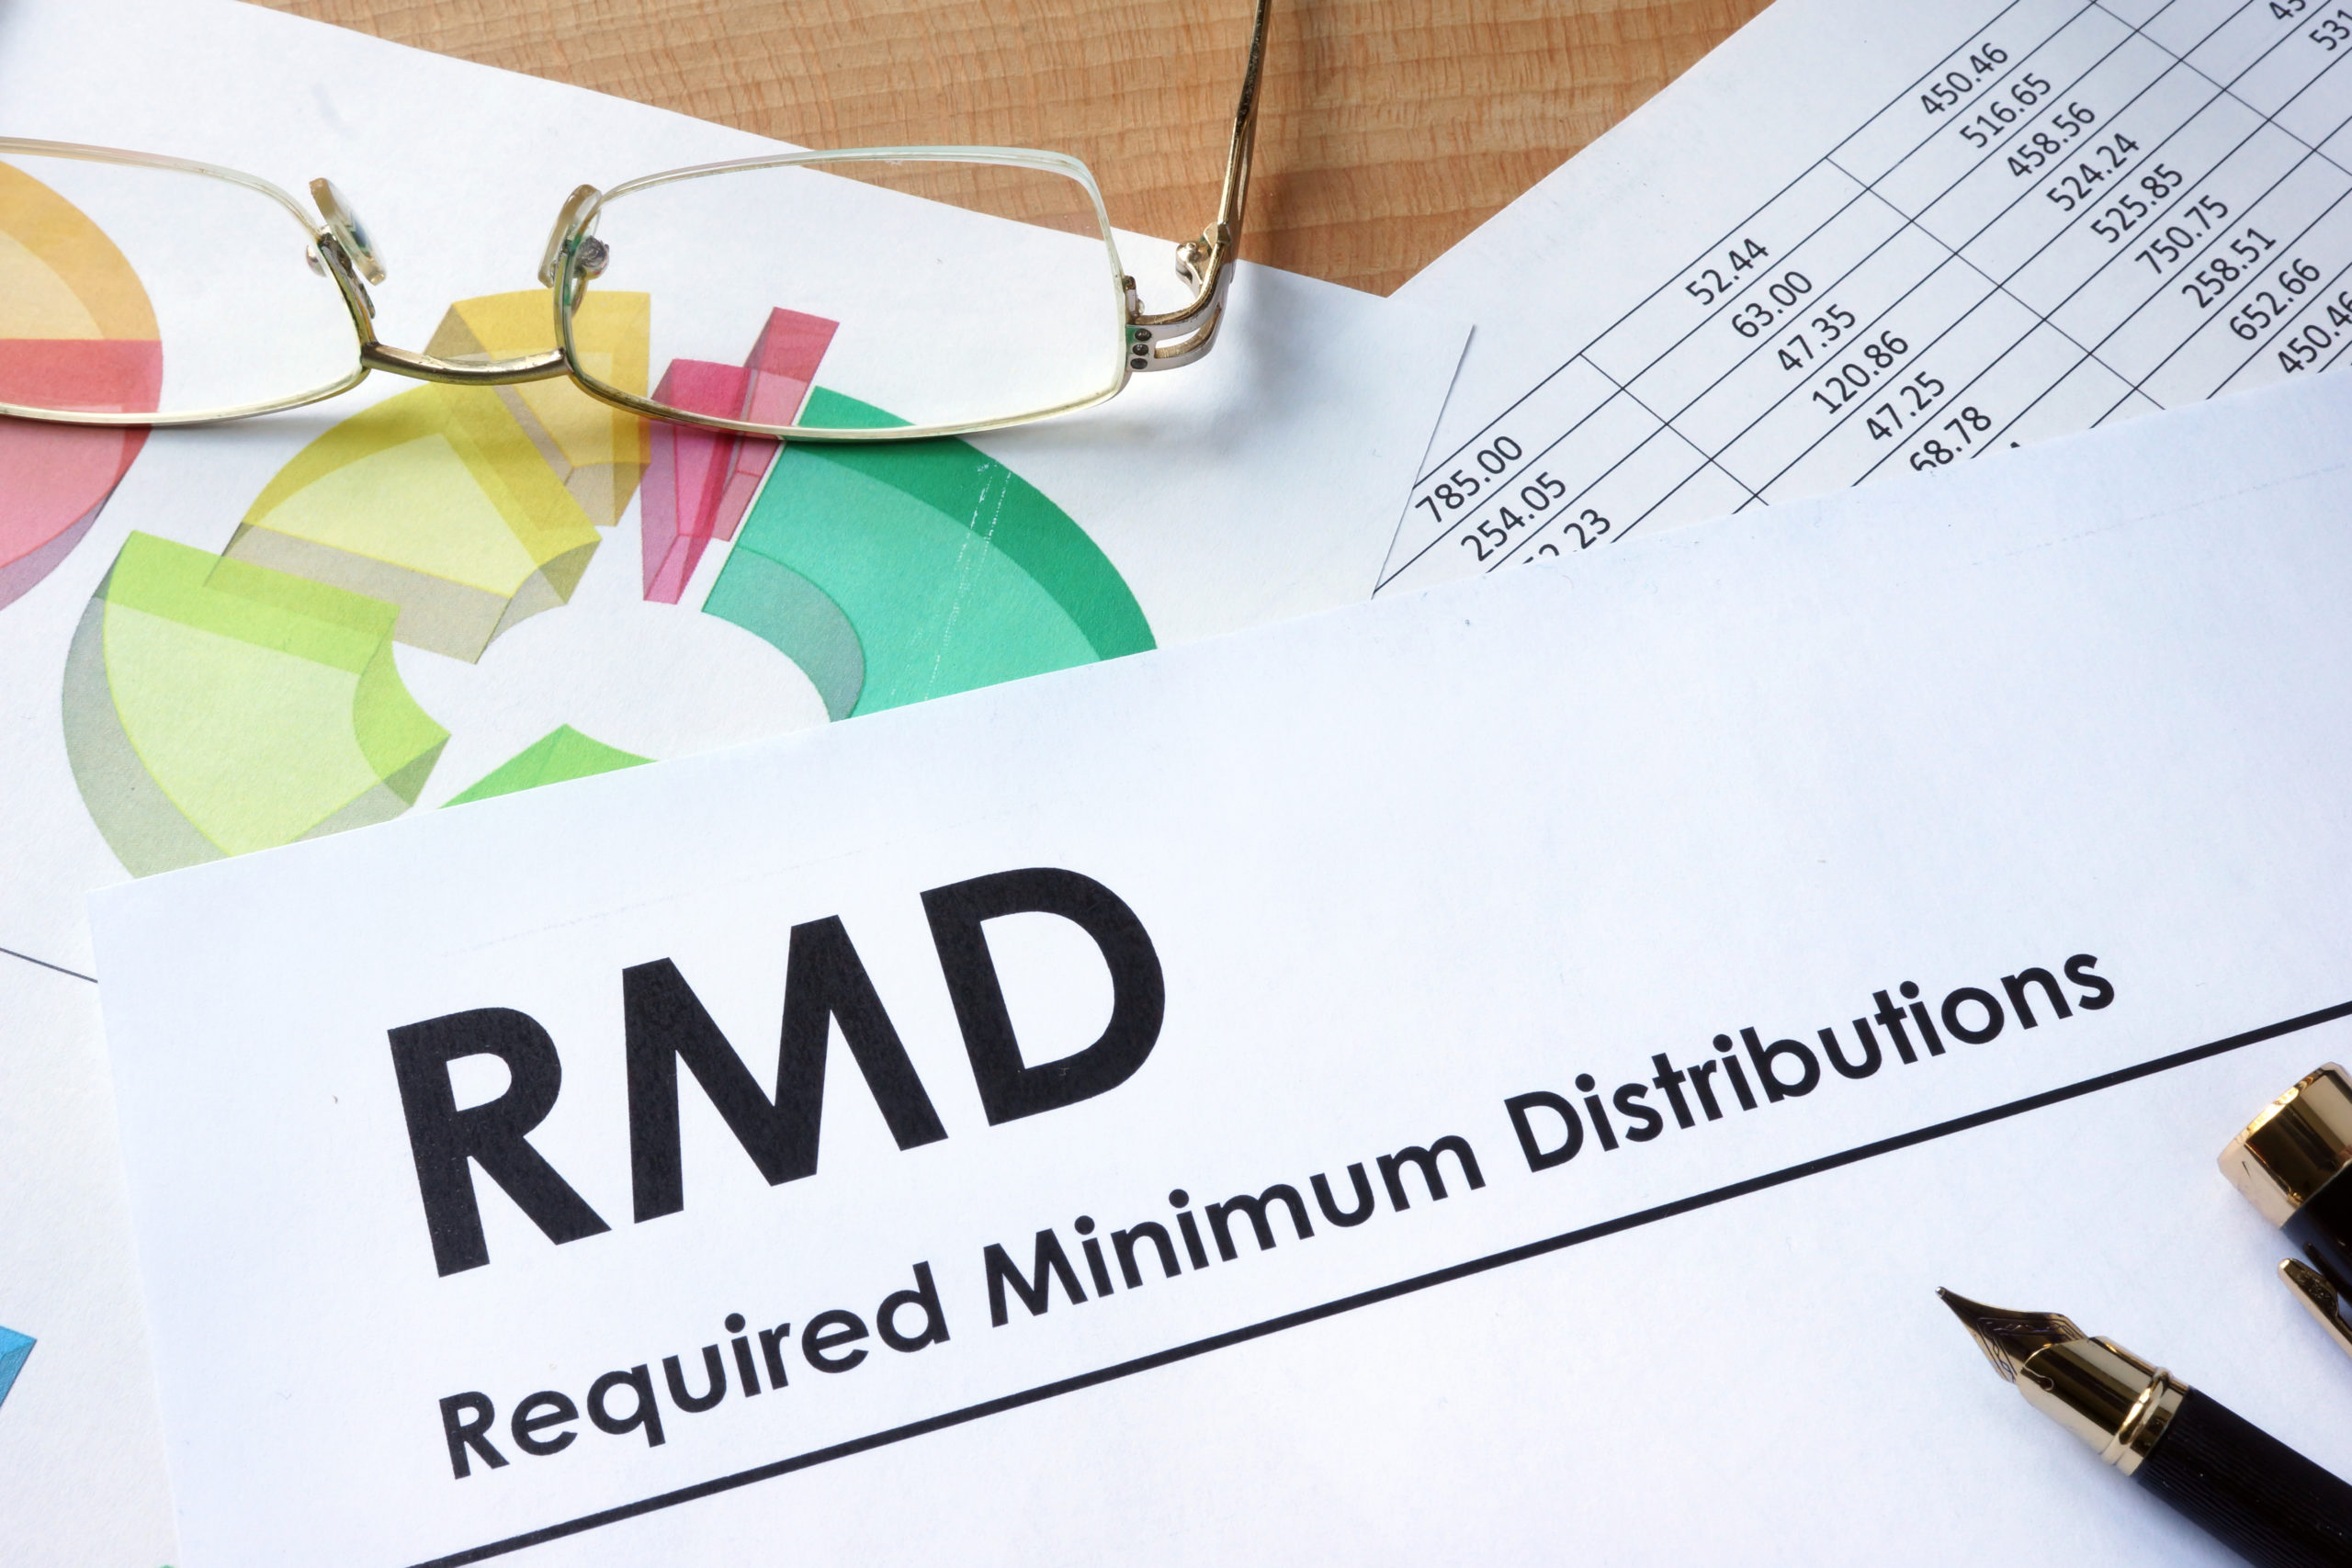 Age 72: Required Minimum Distributions (RMDs)